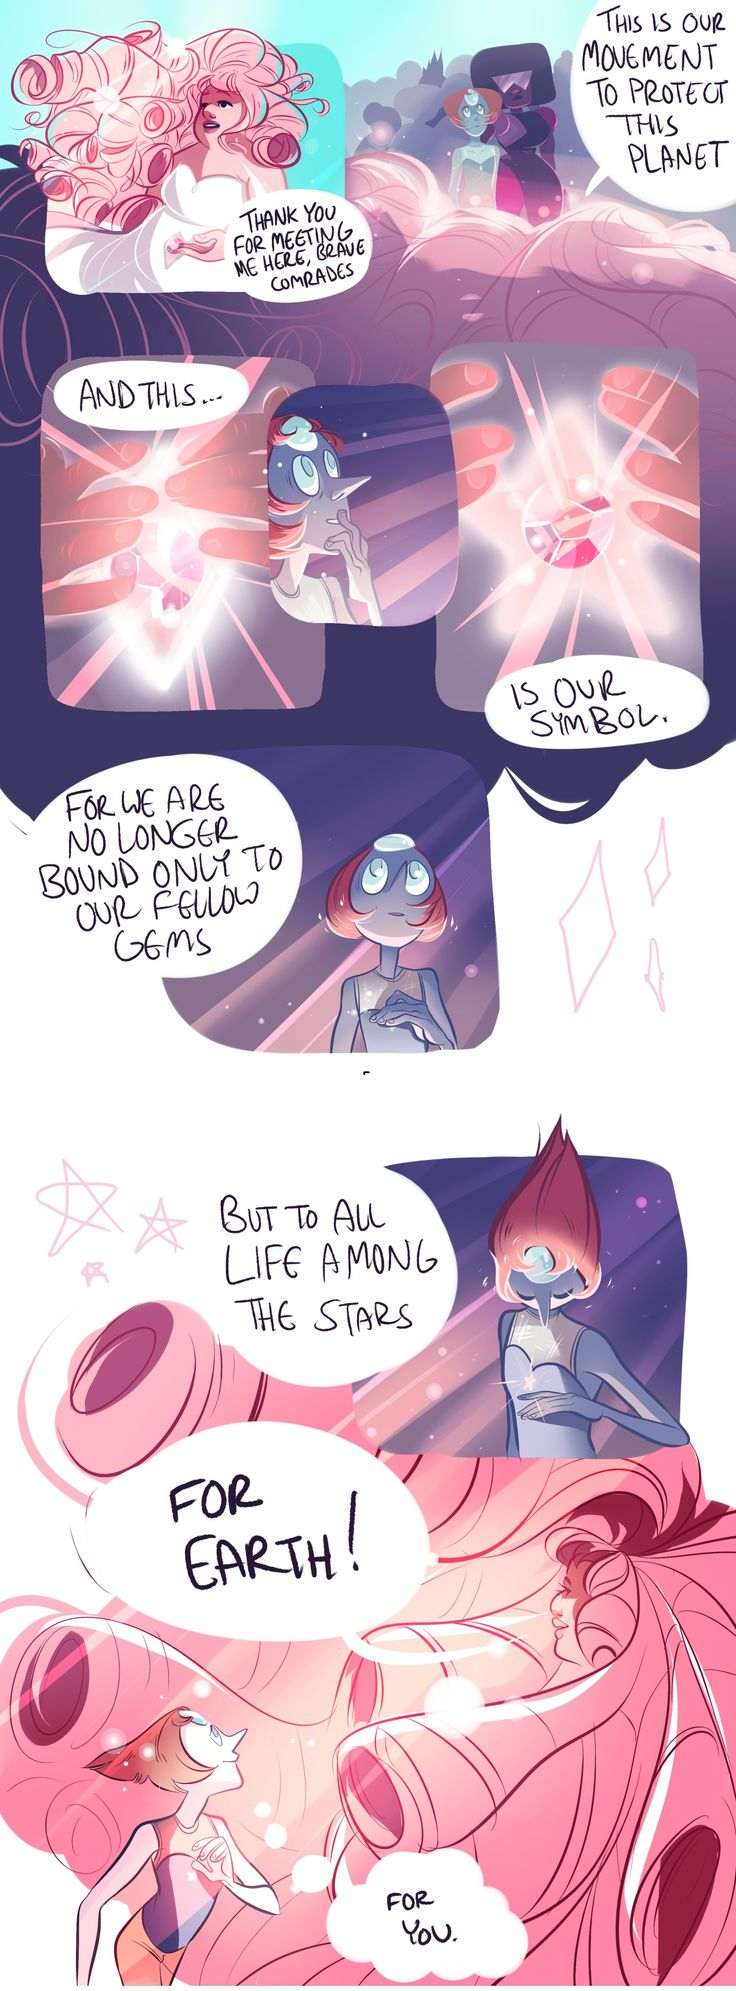 Except they don't get stars until after Rose meets Greg. Well, Rose has a star, and Greg has a star, but the rest of the gems don't.